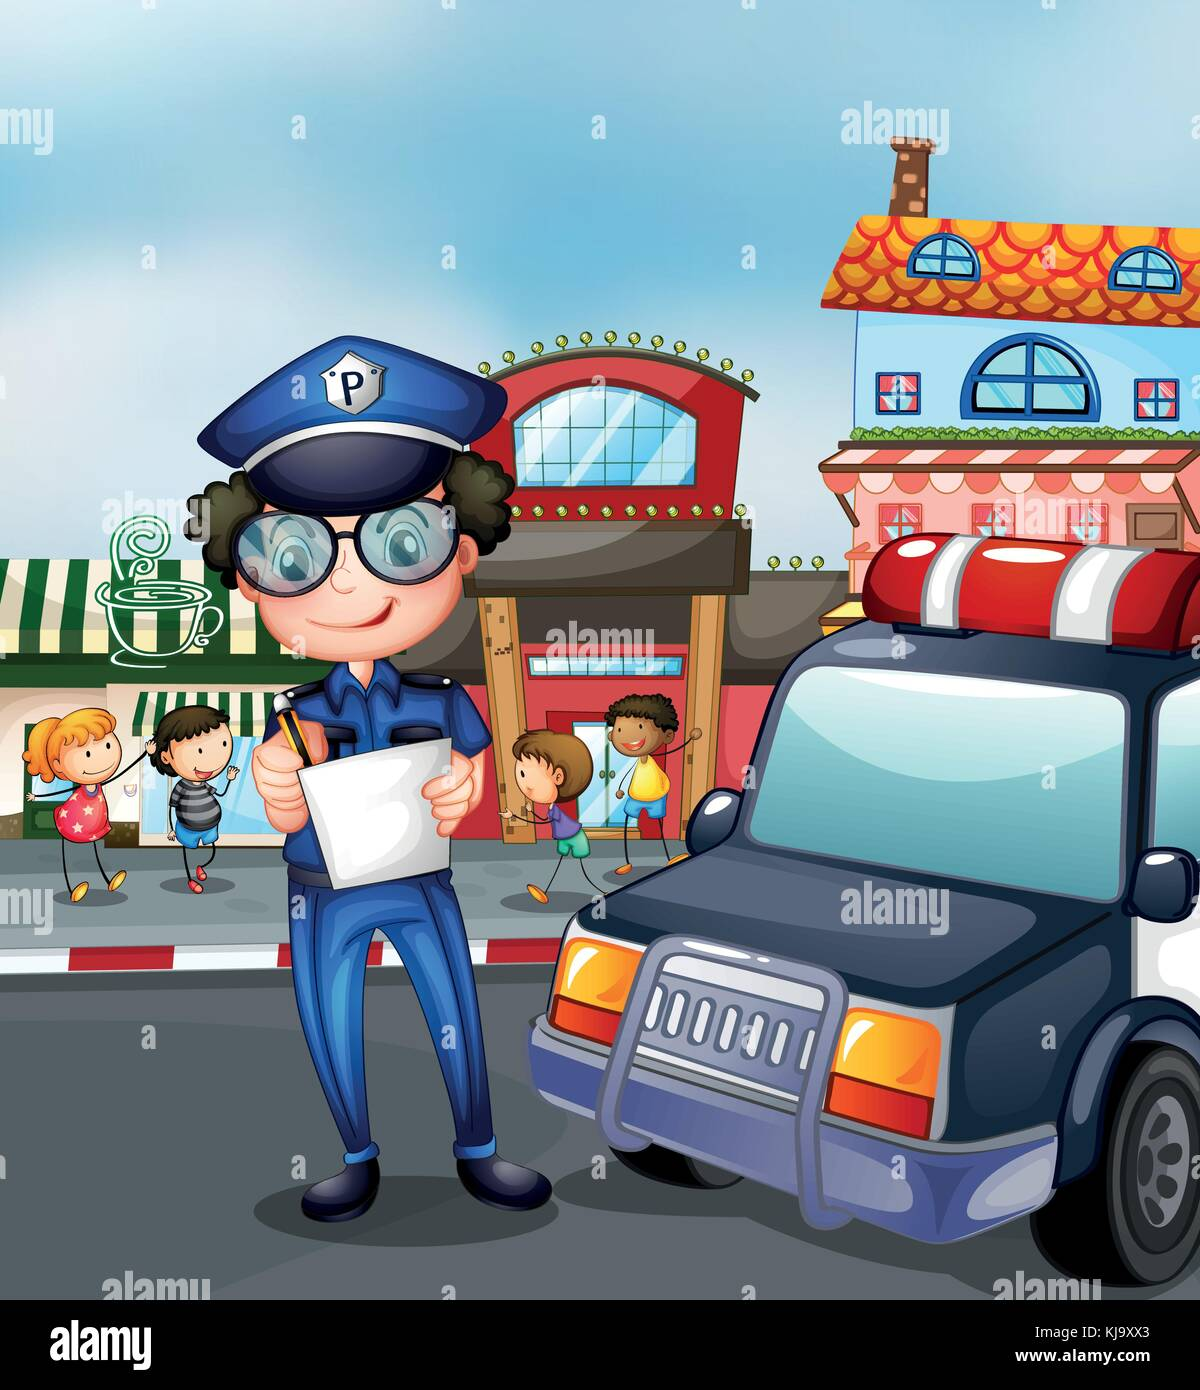 Illustration of a policeman at a busy street - Stock Vector